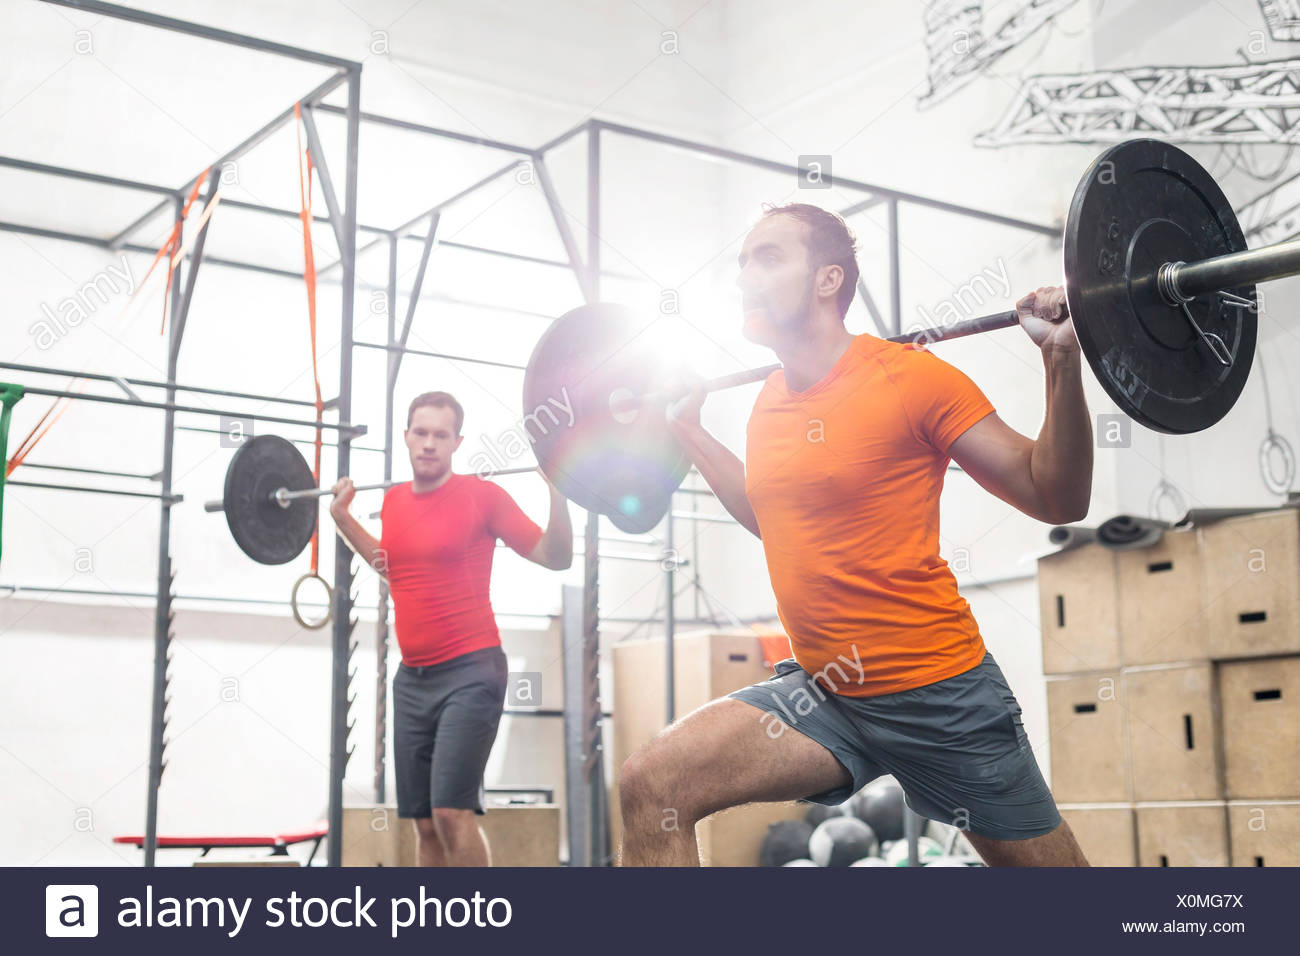 Les hommes en sport crossfit barbell de levage Photo Stock